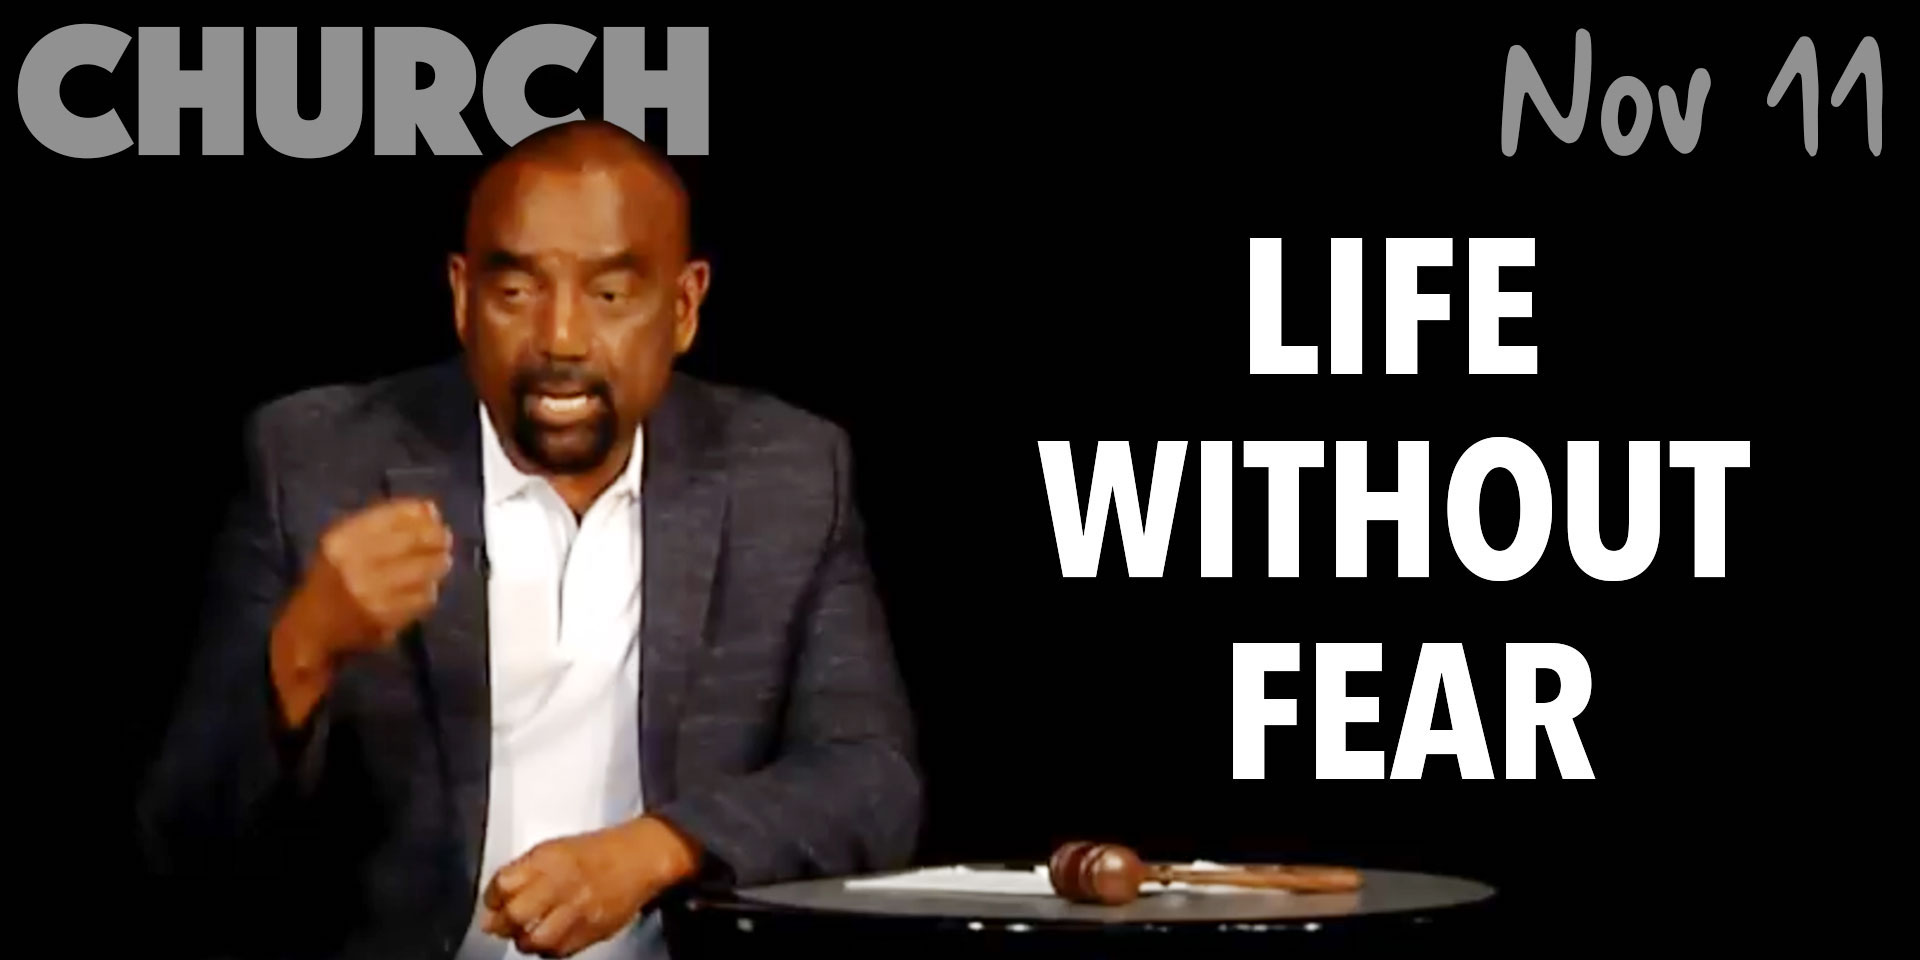 Life Without Fear (Church, Nov 11)